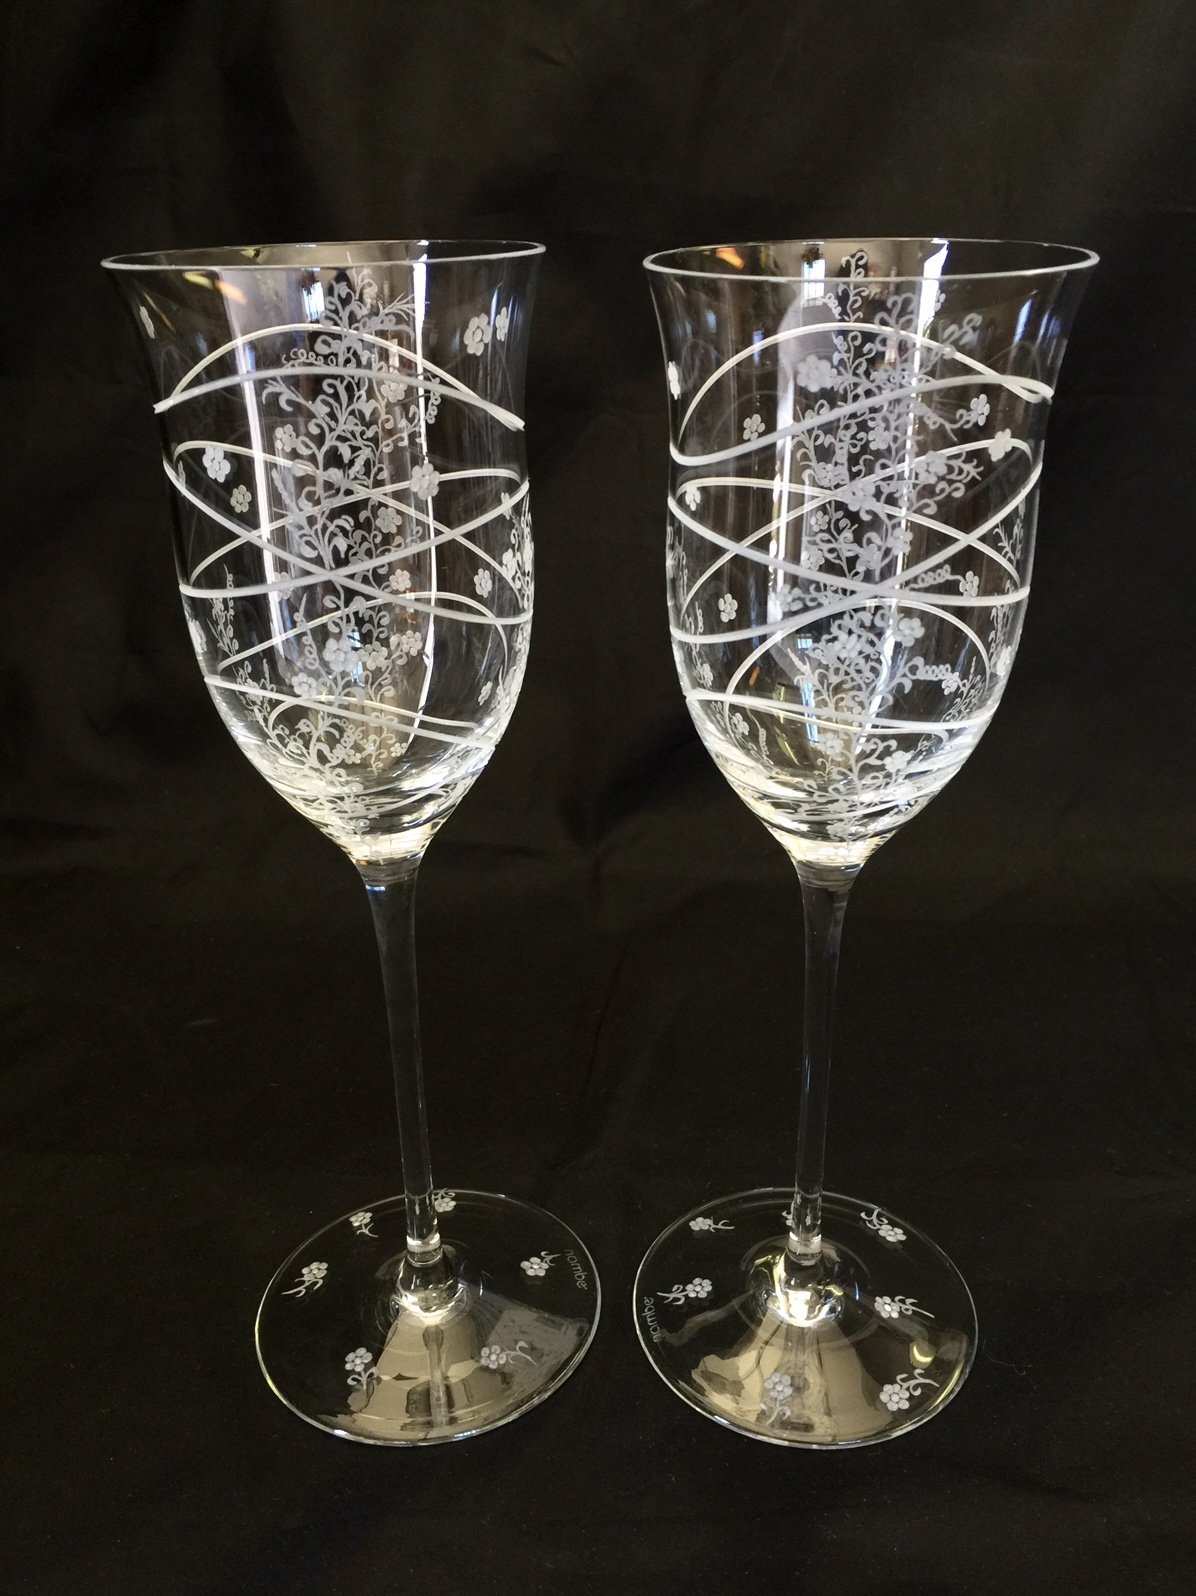 Hand Engraved Wine Goblets, Flowers, Housewarming, Home Decor, Toasting, crystal wine glass etched, Floral wine glass, Wine Glasses Hand Engraved